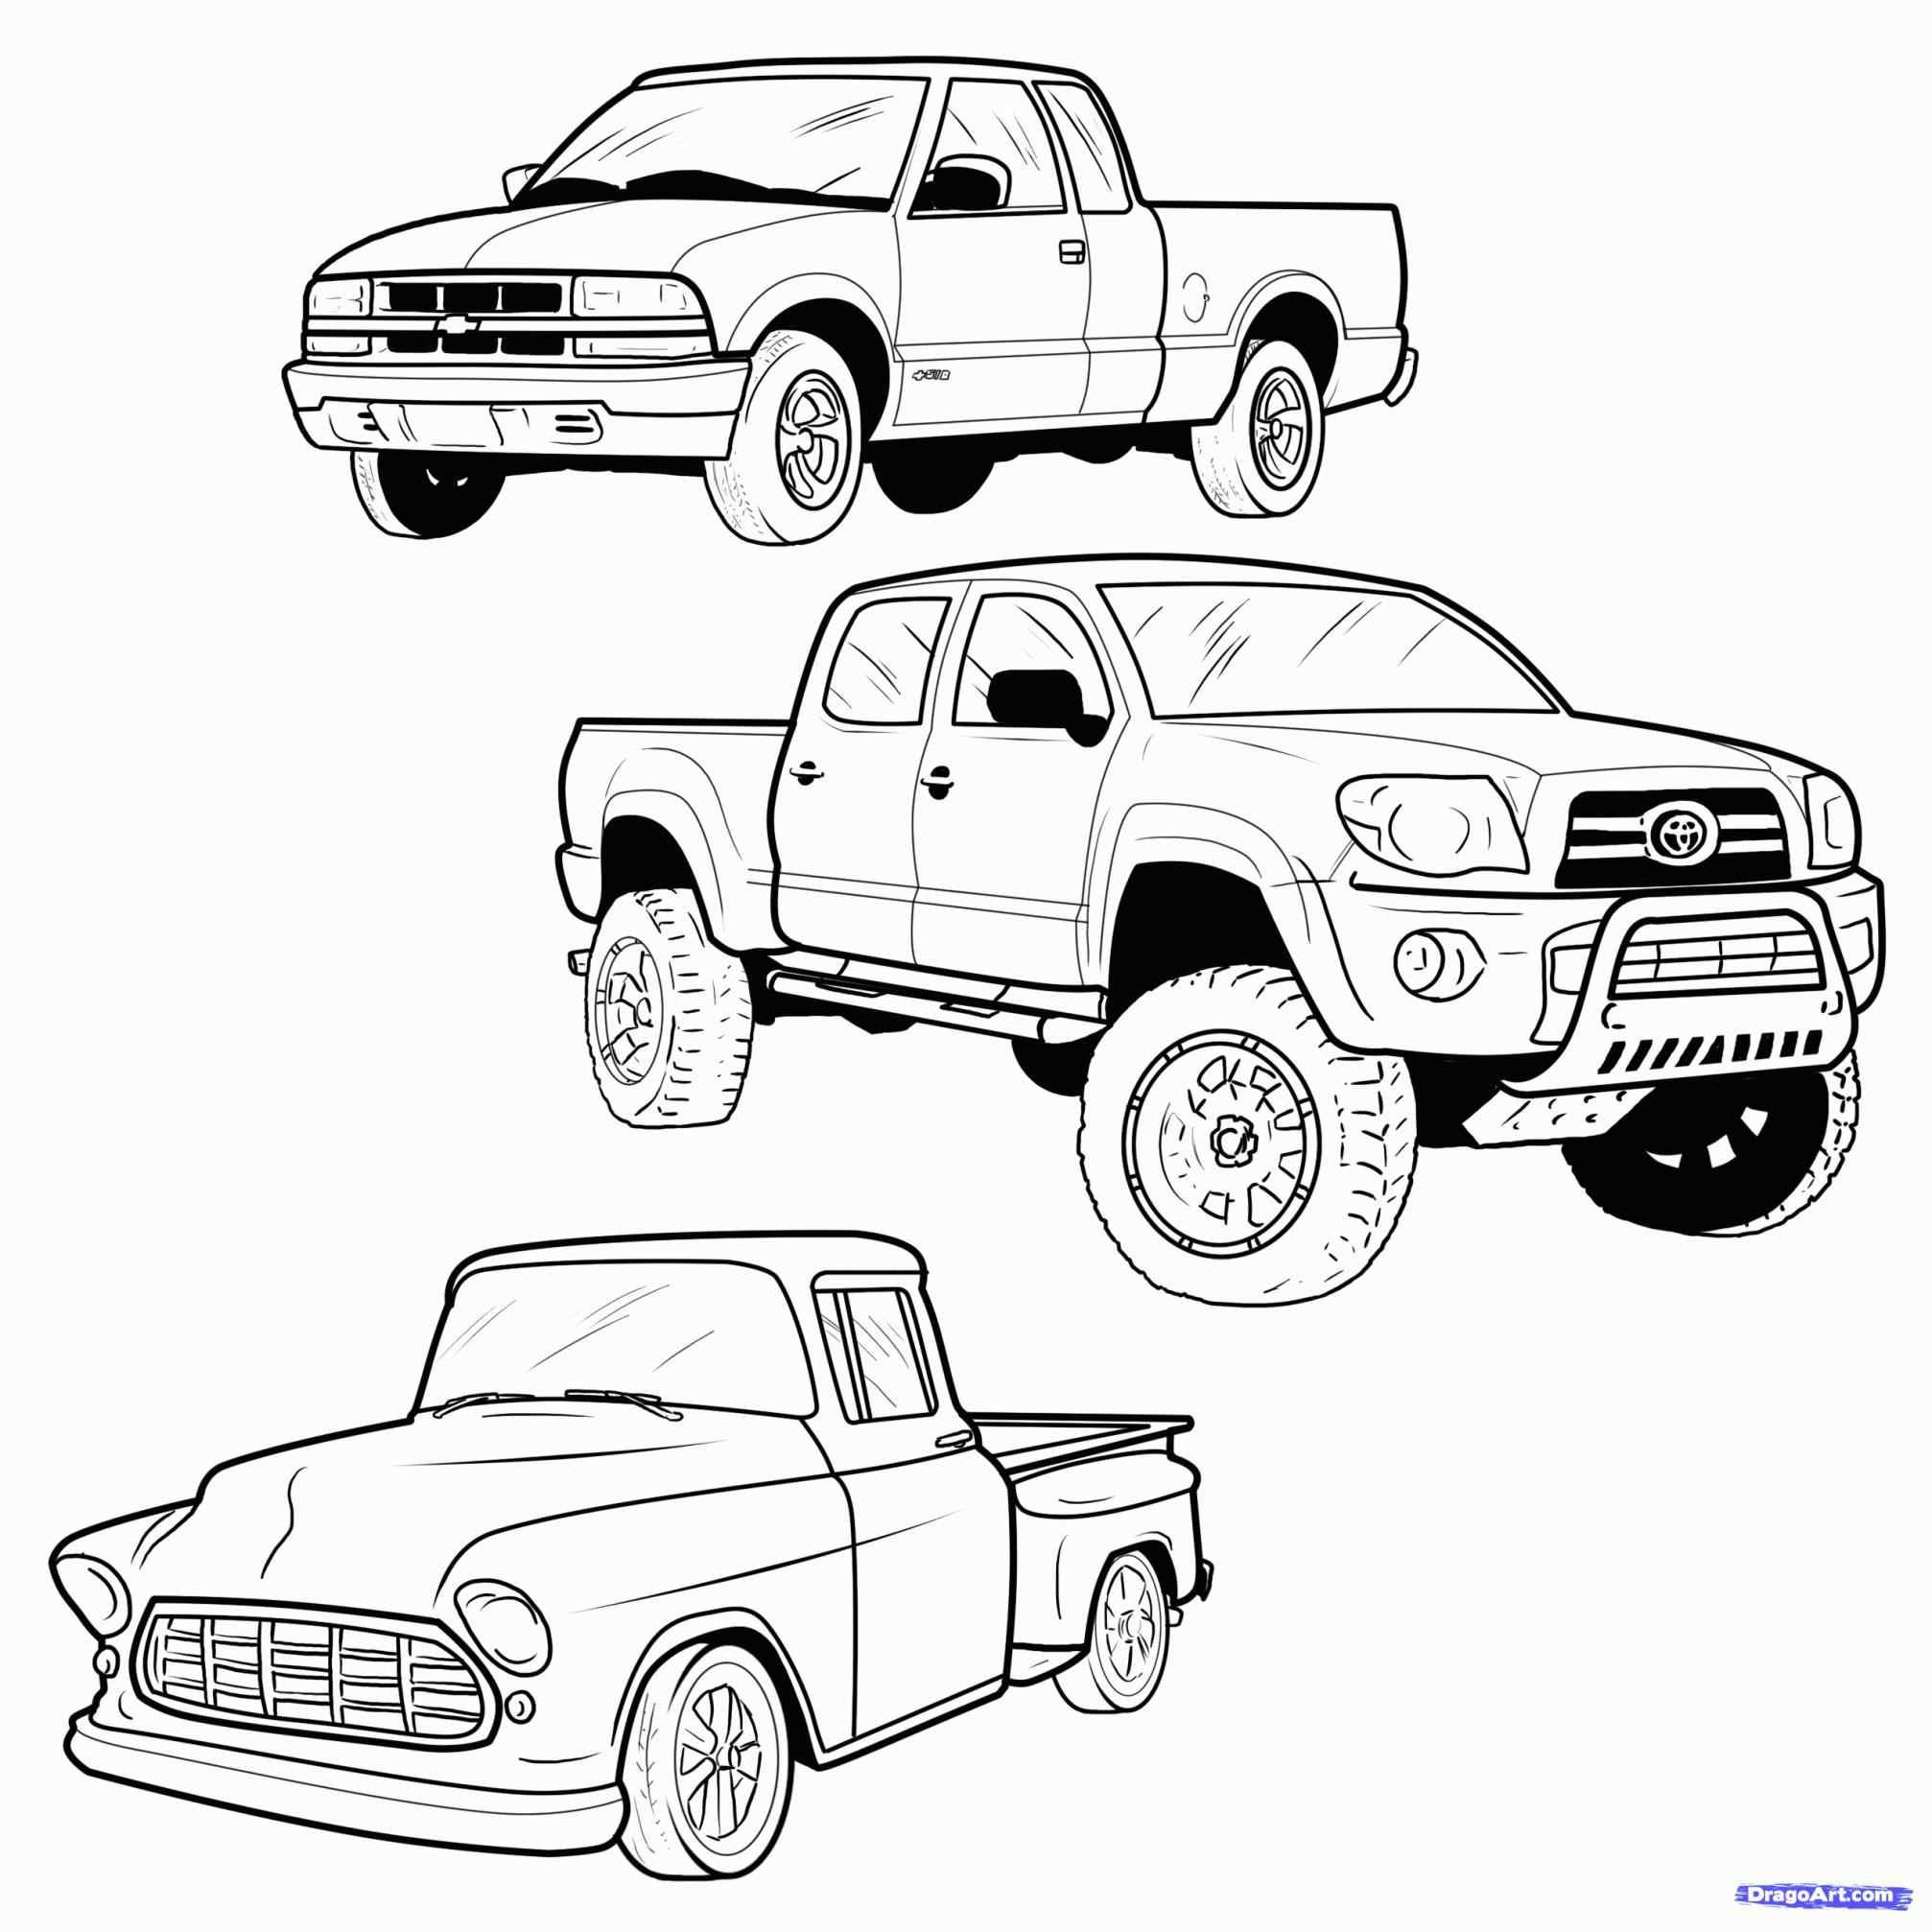 Line drawing 1 2014x2014 57 chevy truck coloring pages online coloring printable